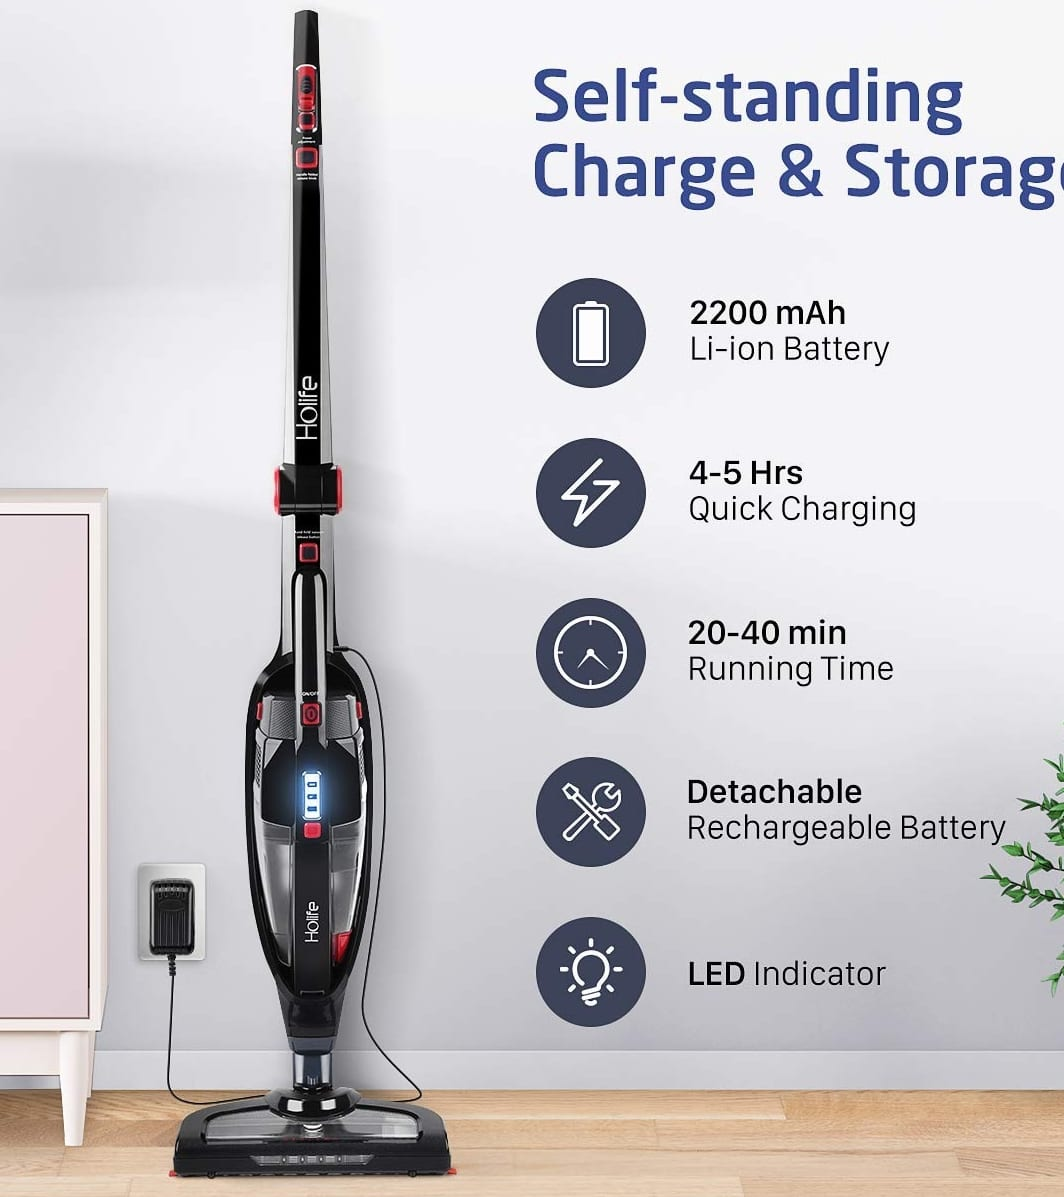 Sofa Vacuum Cleaner Brush Holife 2 In 1 Cordless Stick Vacuum Cleaner Upright And Handheld